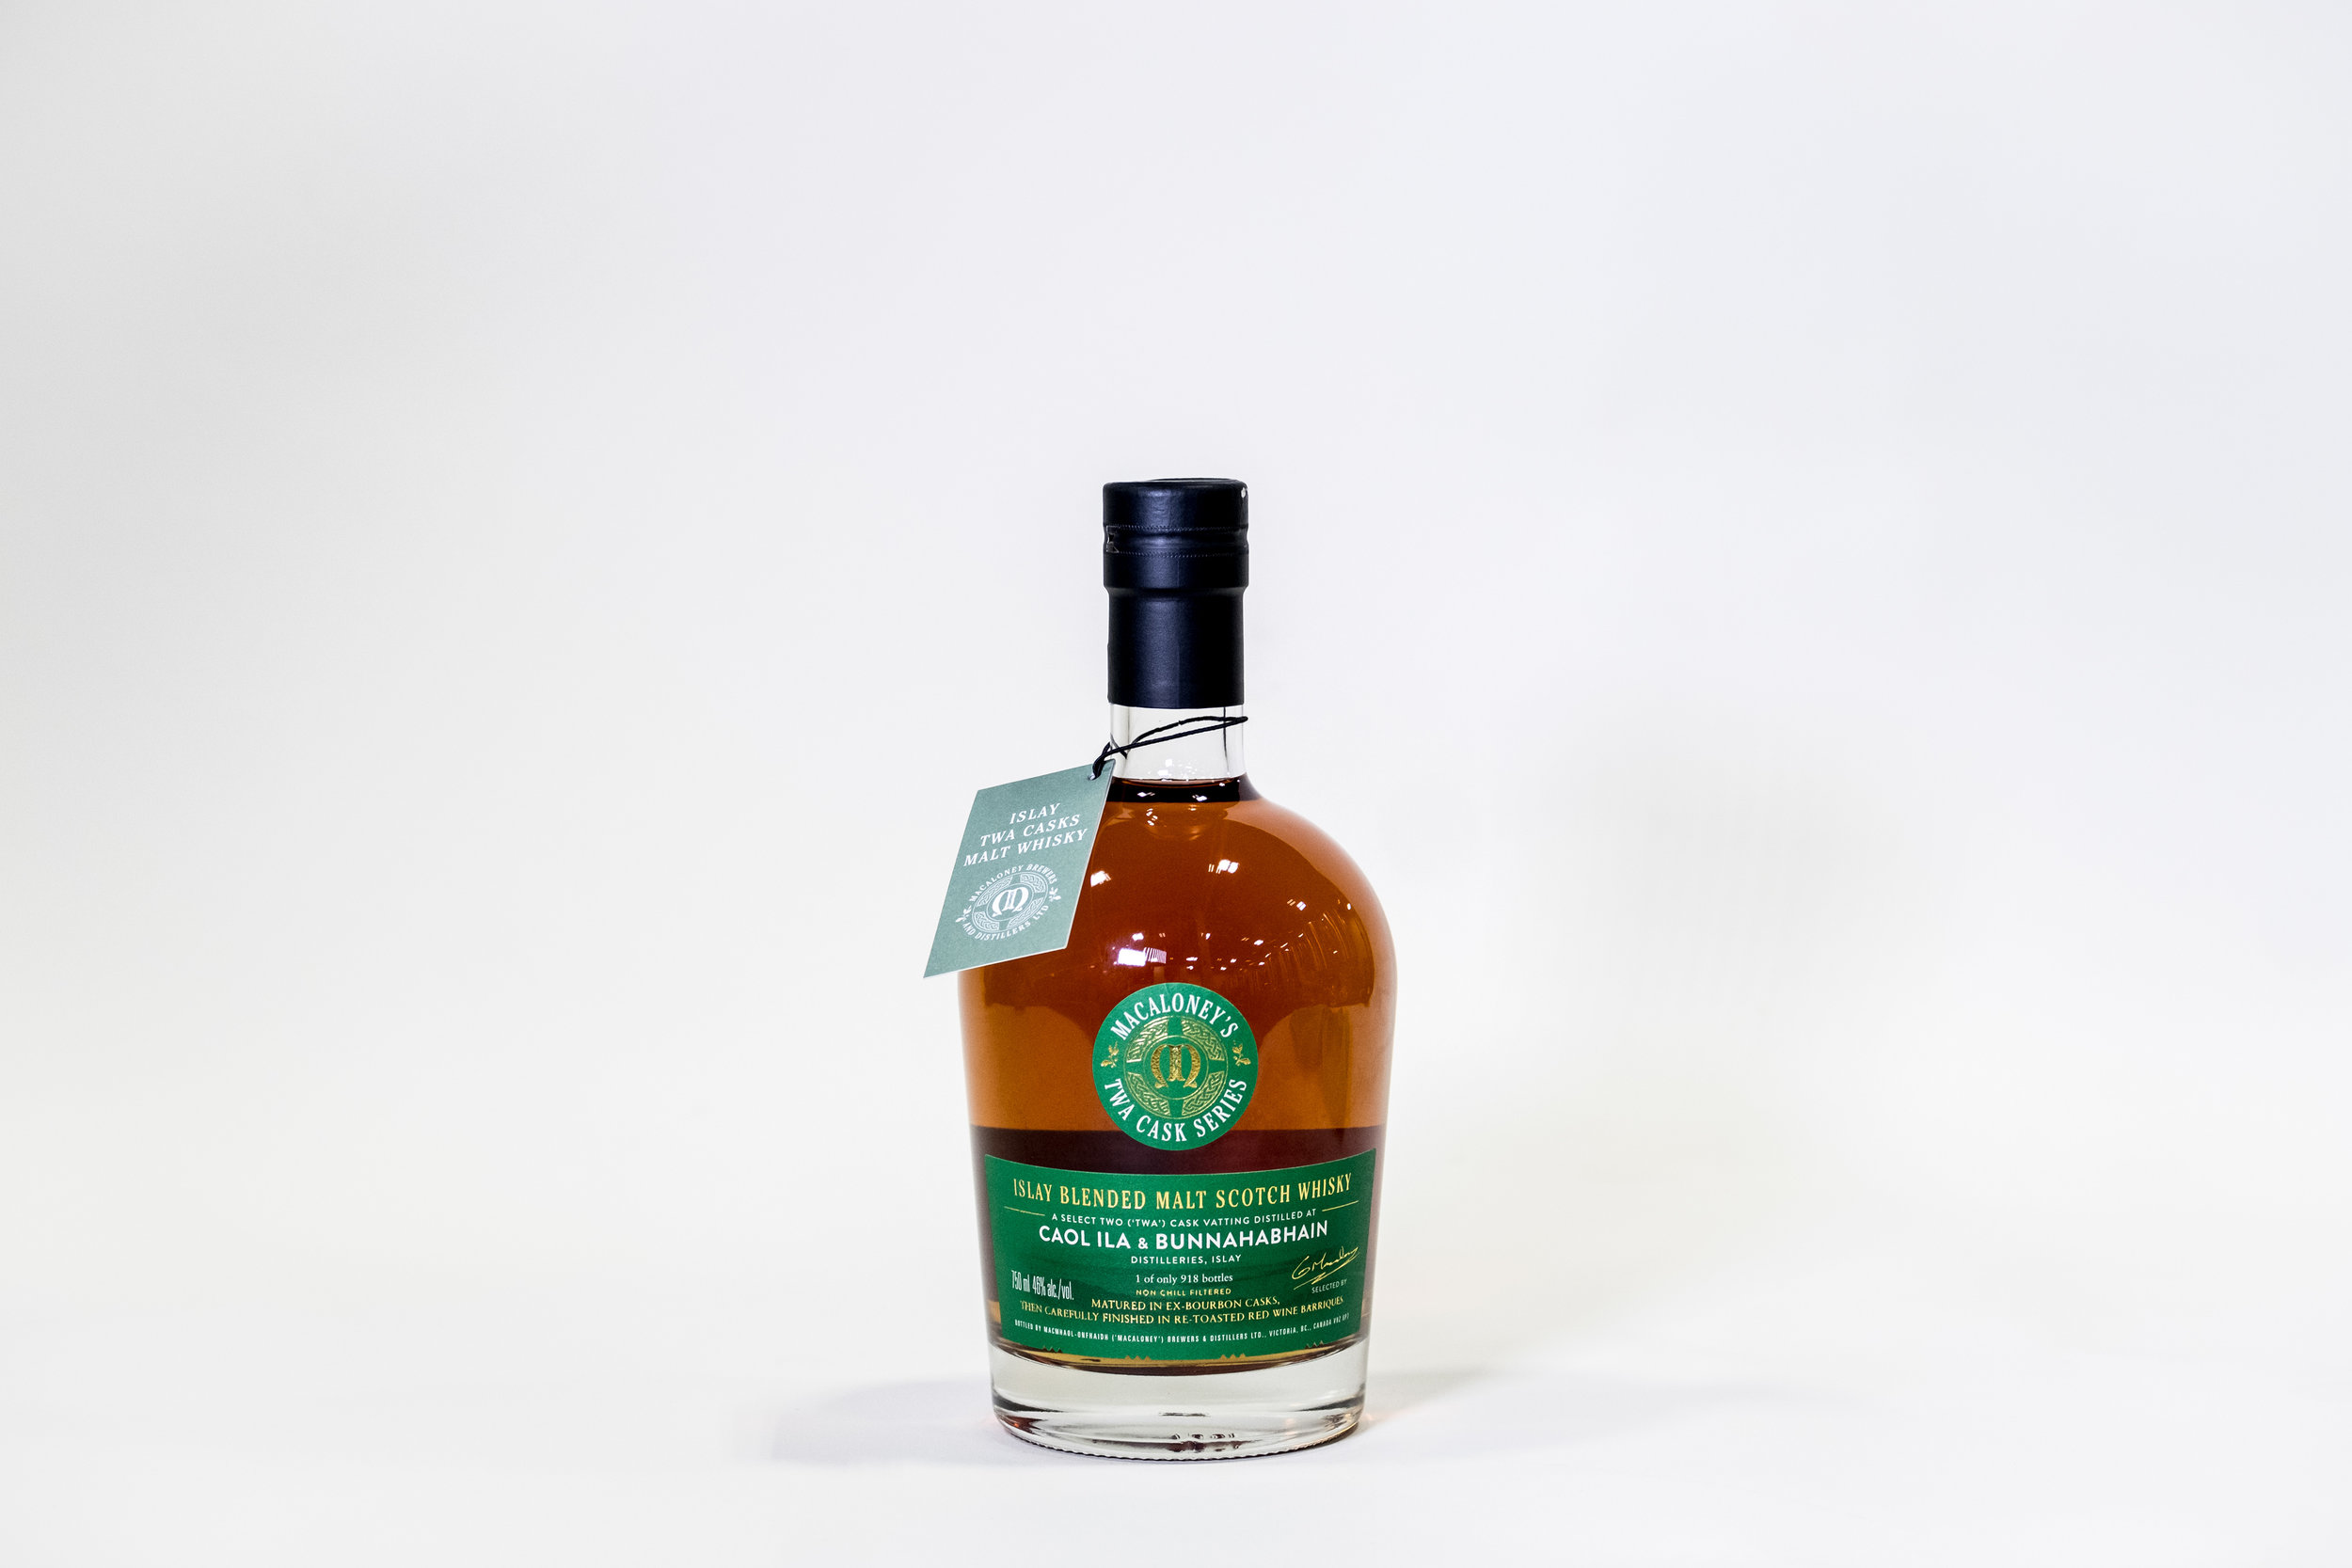 Image courtesy of Victoria Caledonian Distillers.